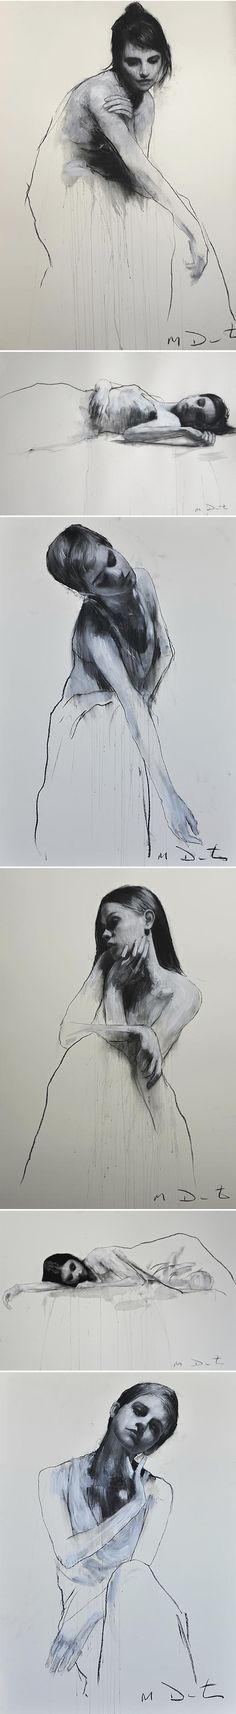 mark demsteader *o*